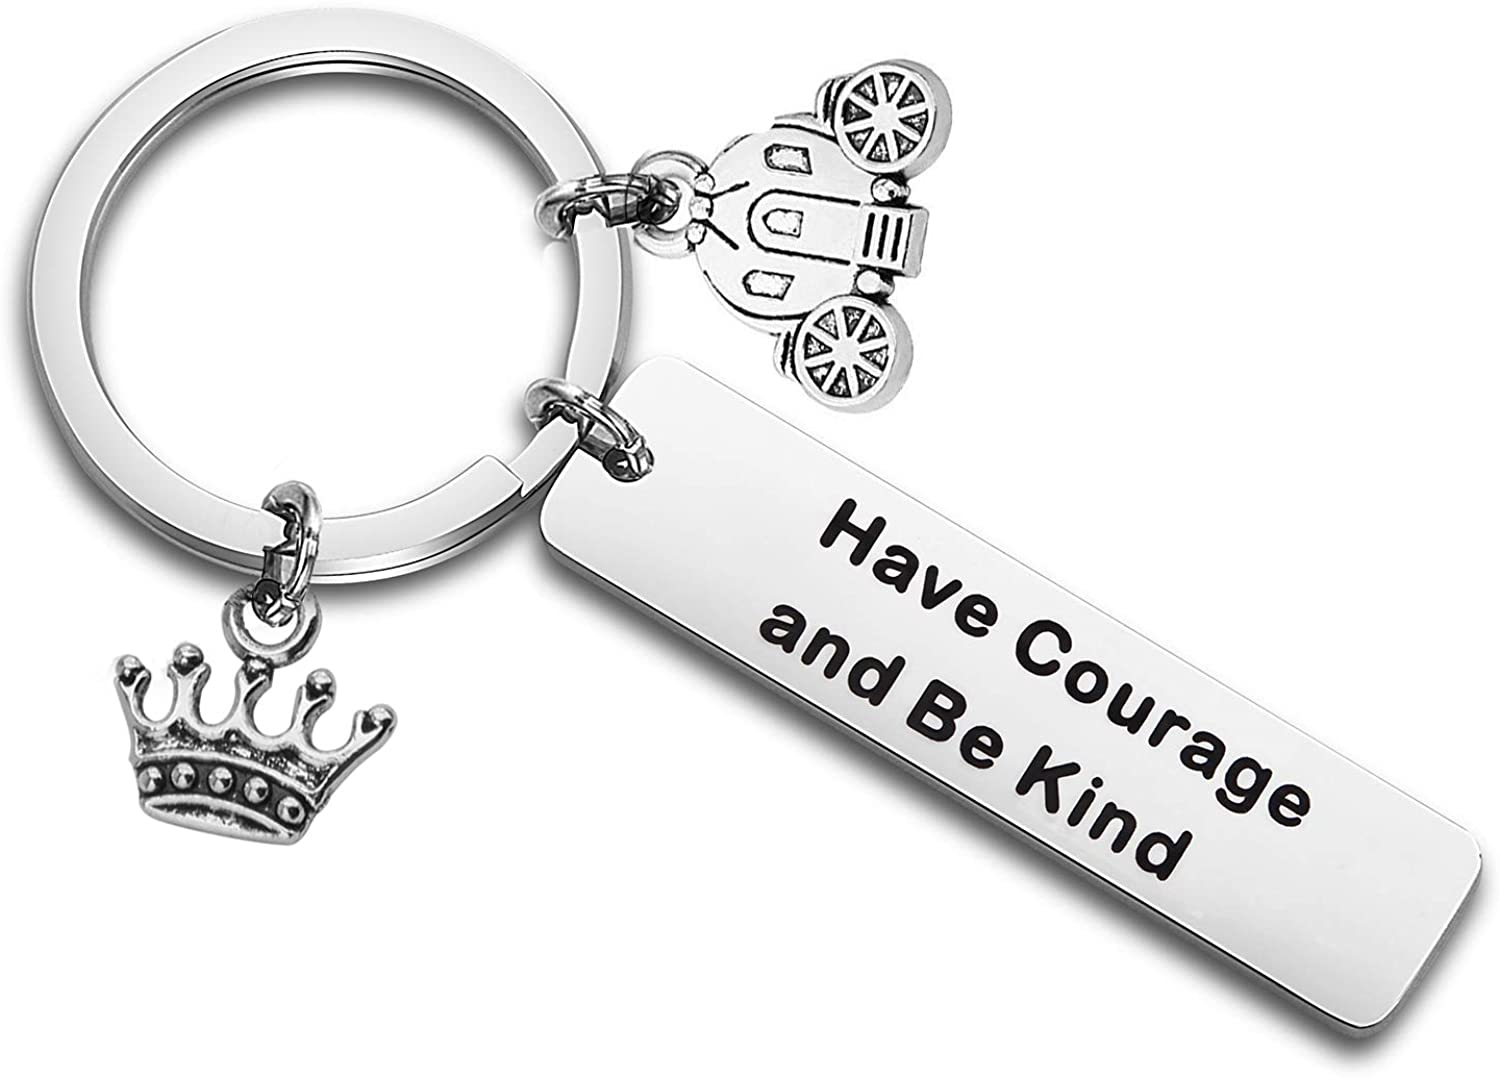 QIIER Have Courage and Be Kind Inspirational Keychain with Pumpkin Carriage Charm Crown Charm Christmas Mother Daughter Friendship Gifts